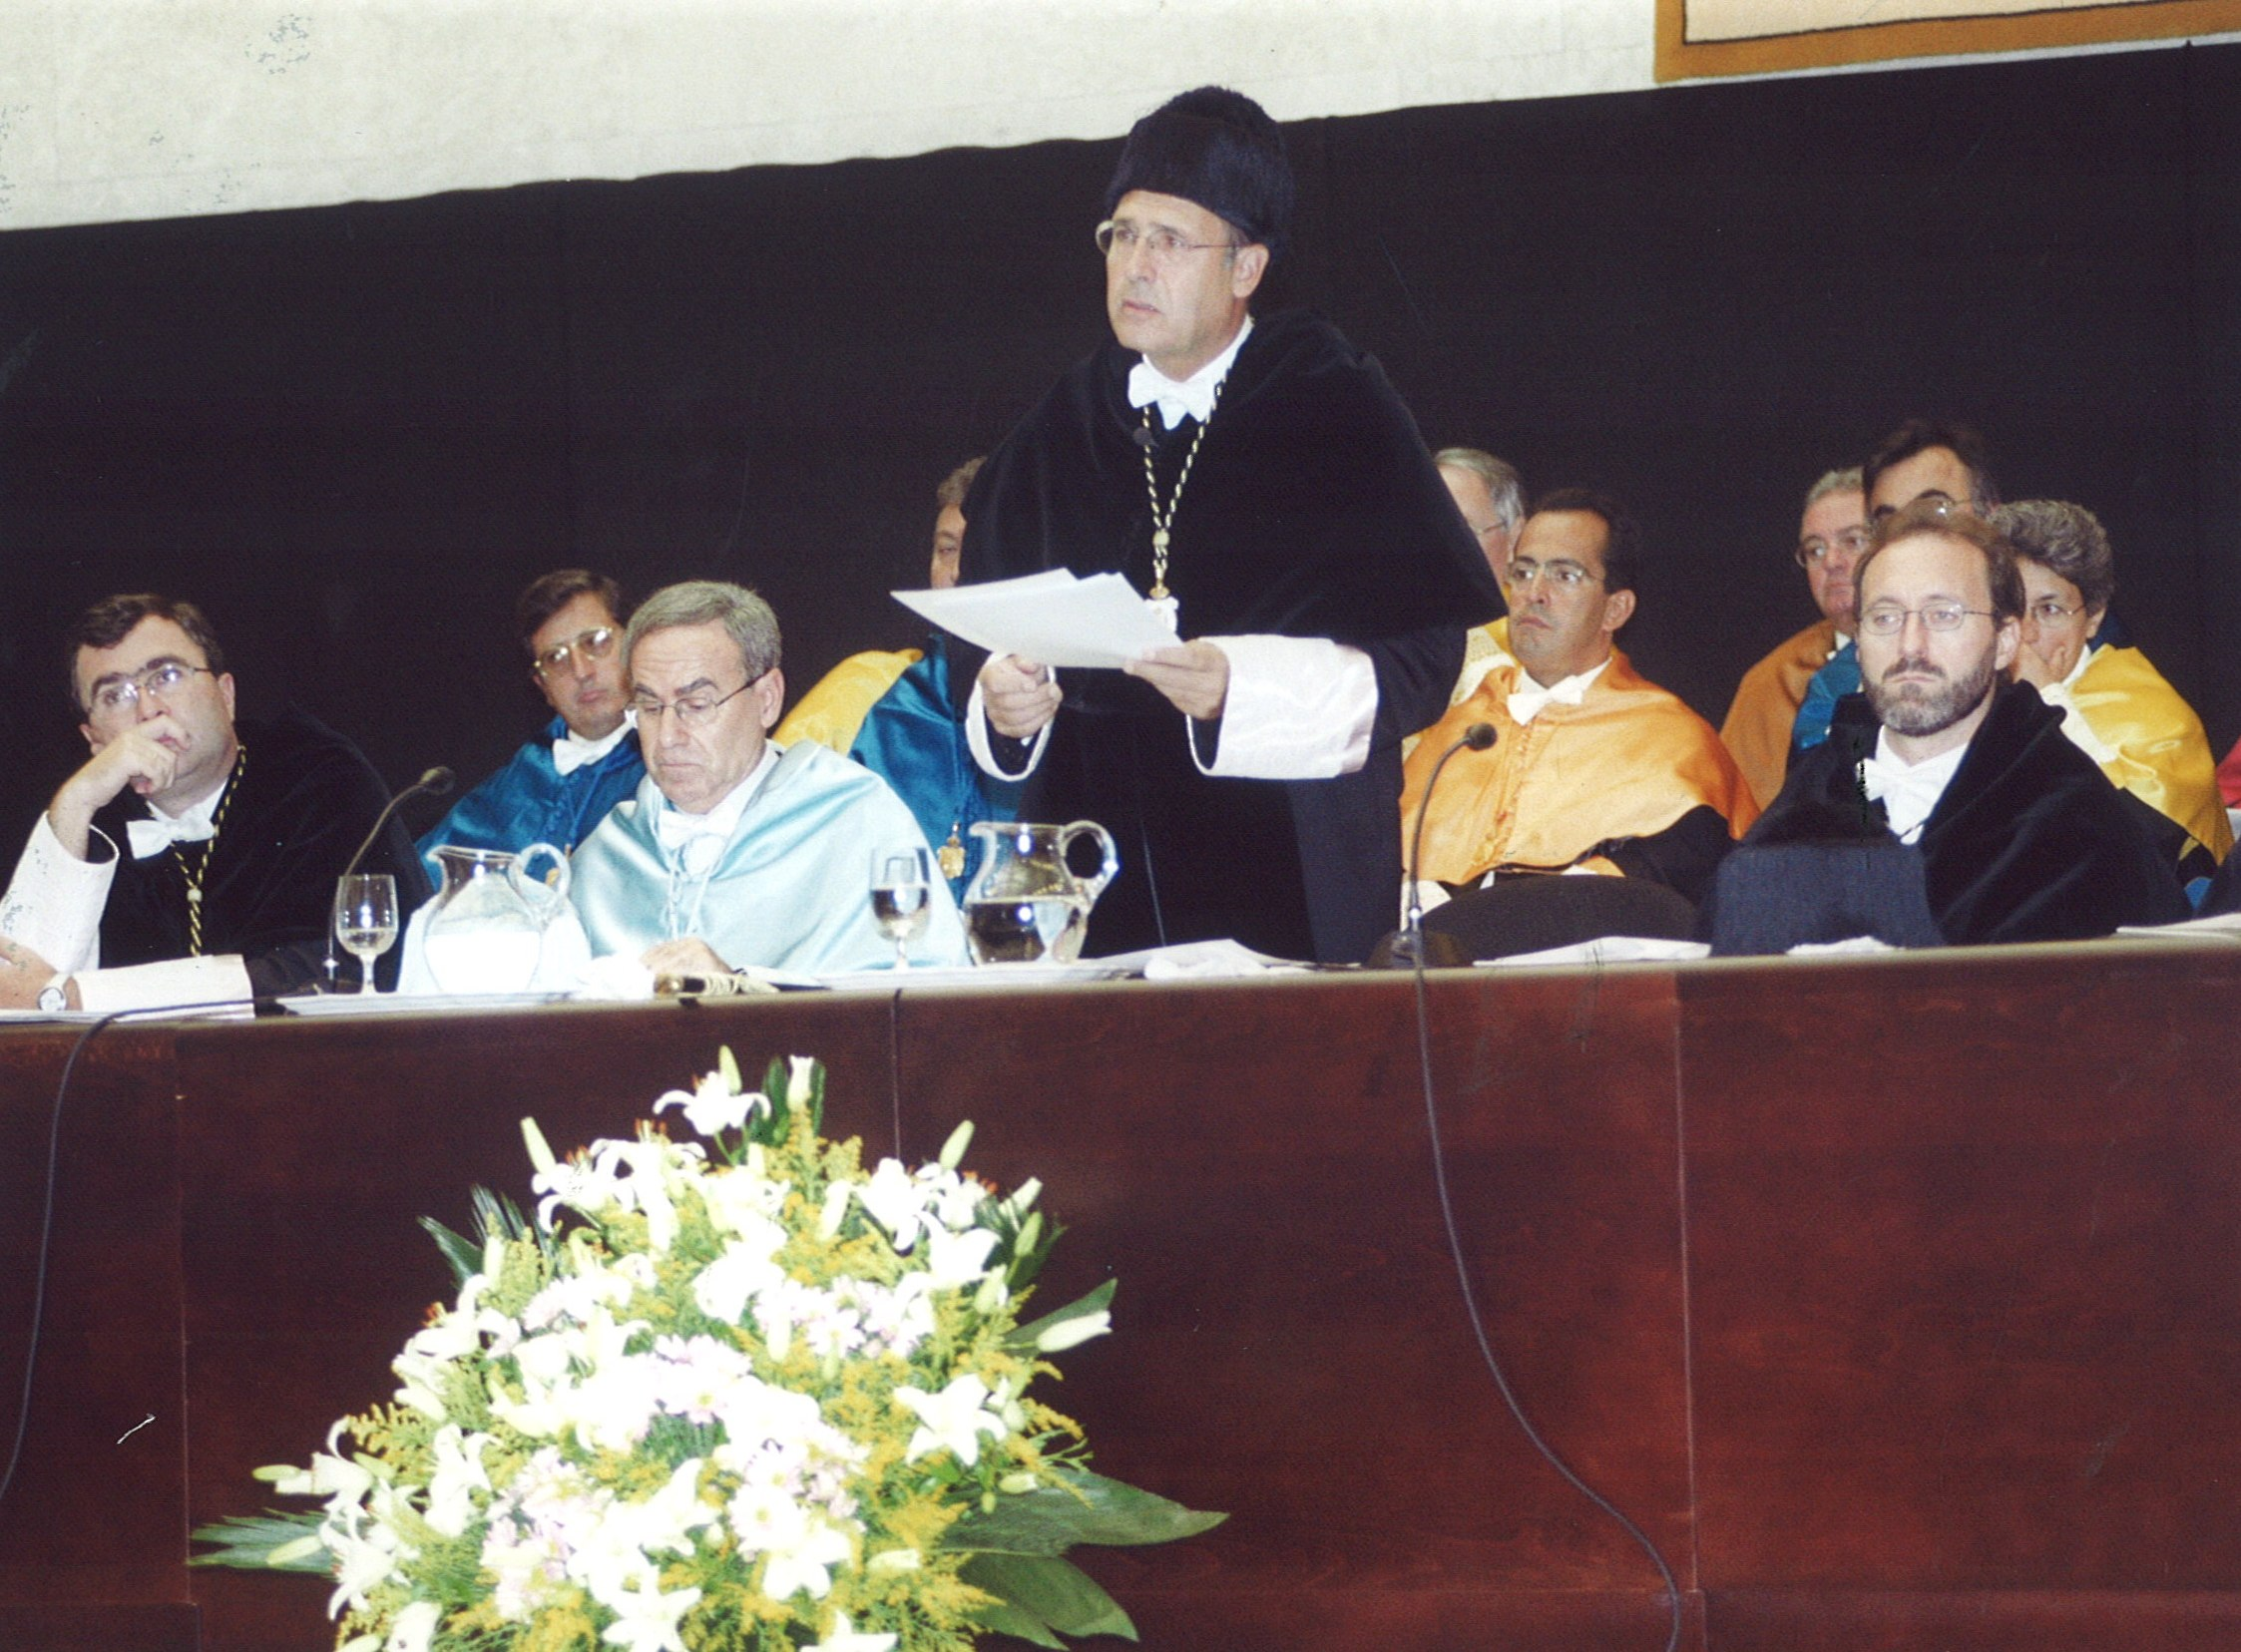 06-dhc-mayor-zaragoza.jpg